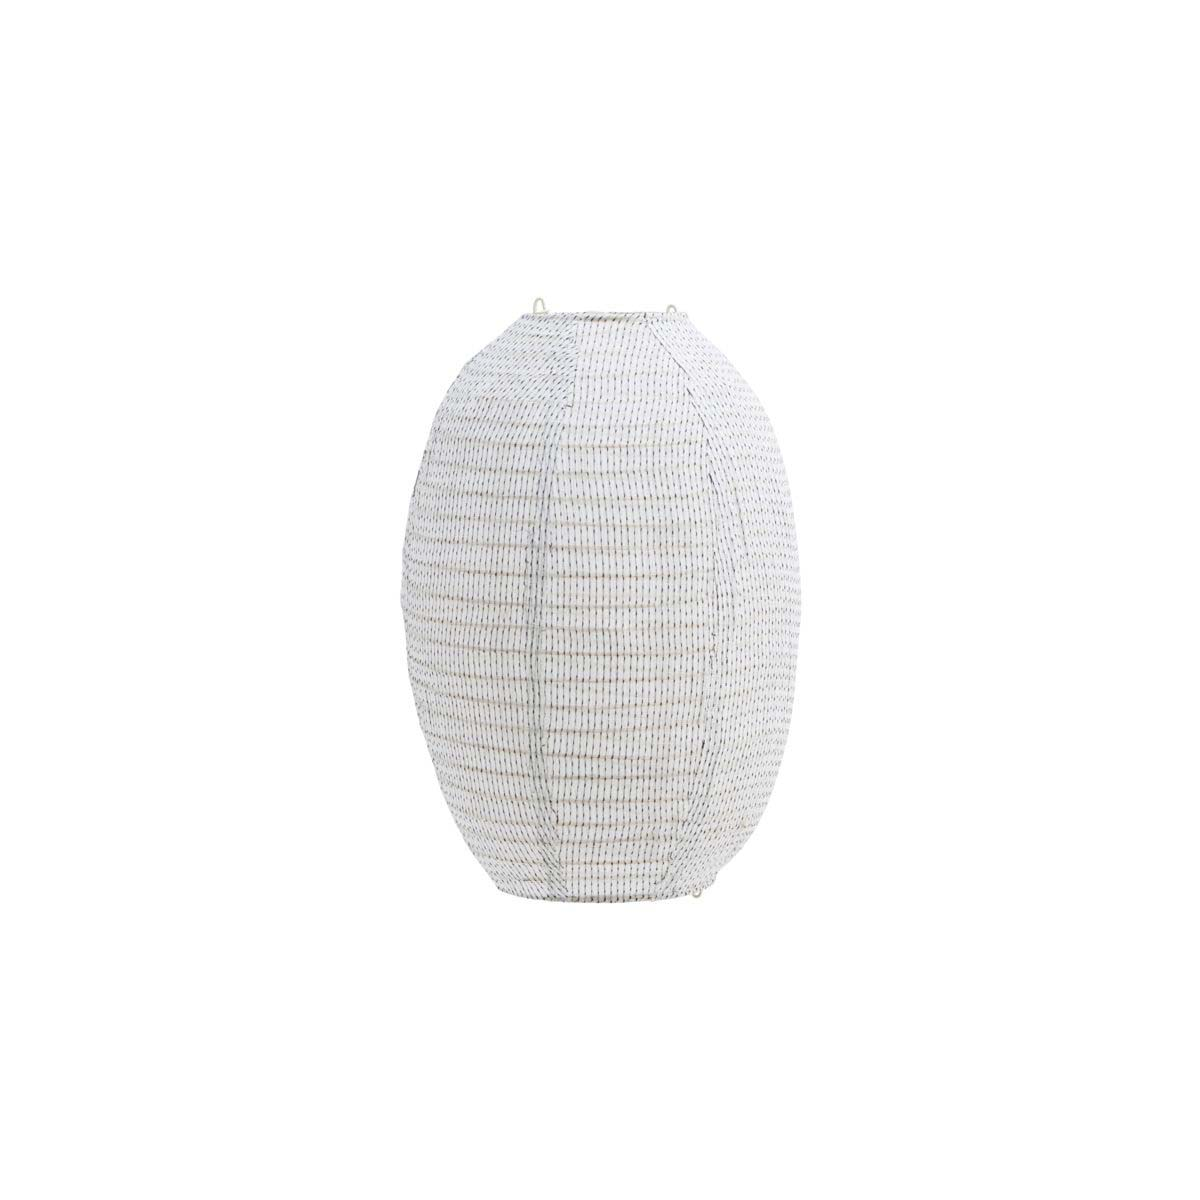 Image of   House Doctor Stitch lampeskærm i off white - 40 cm